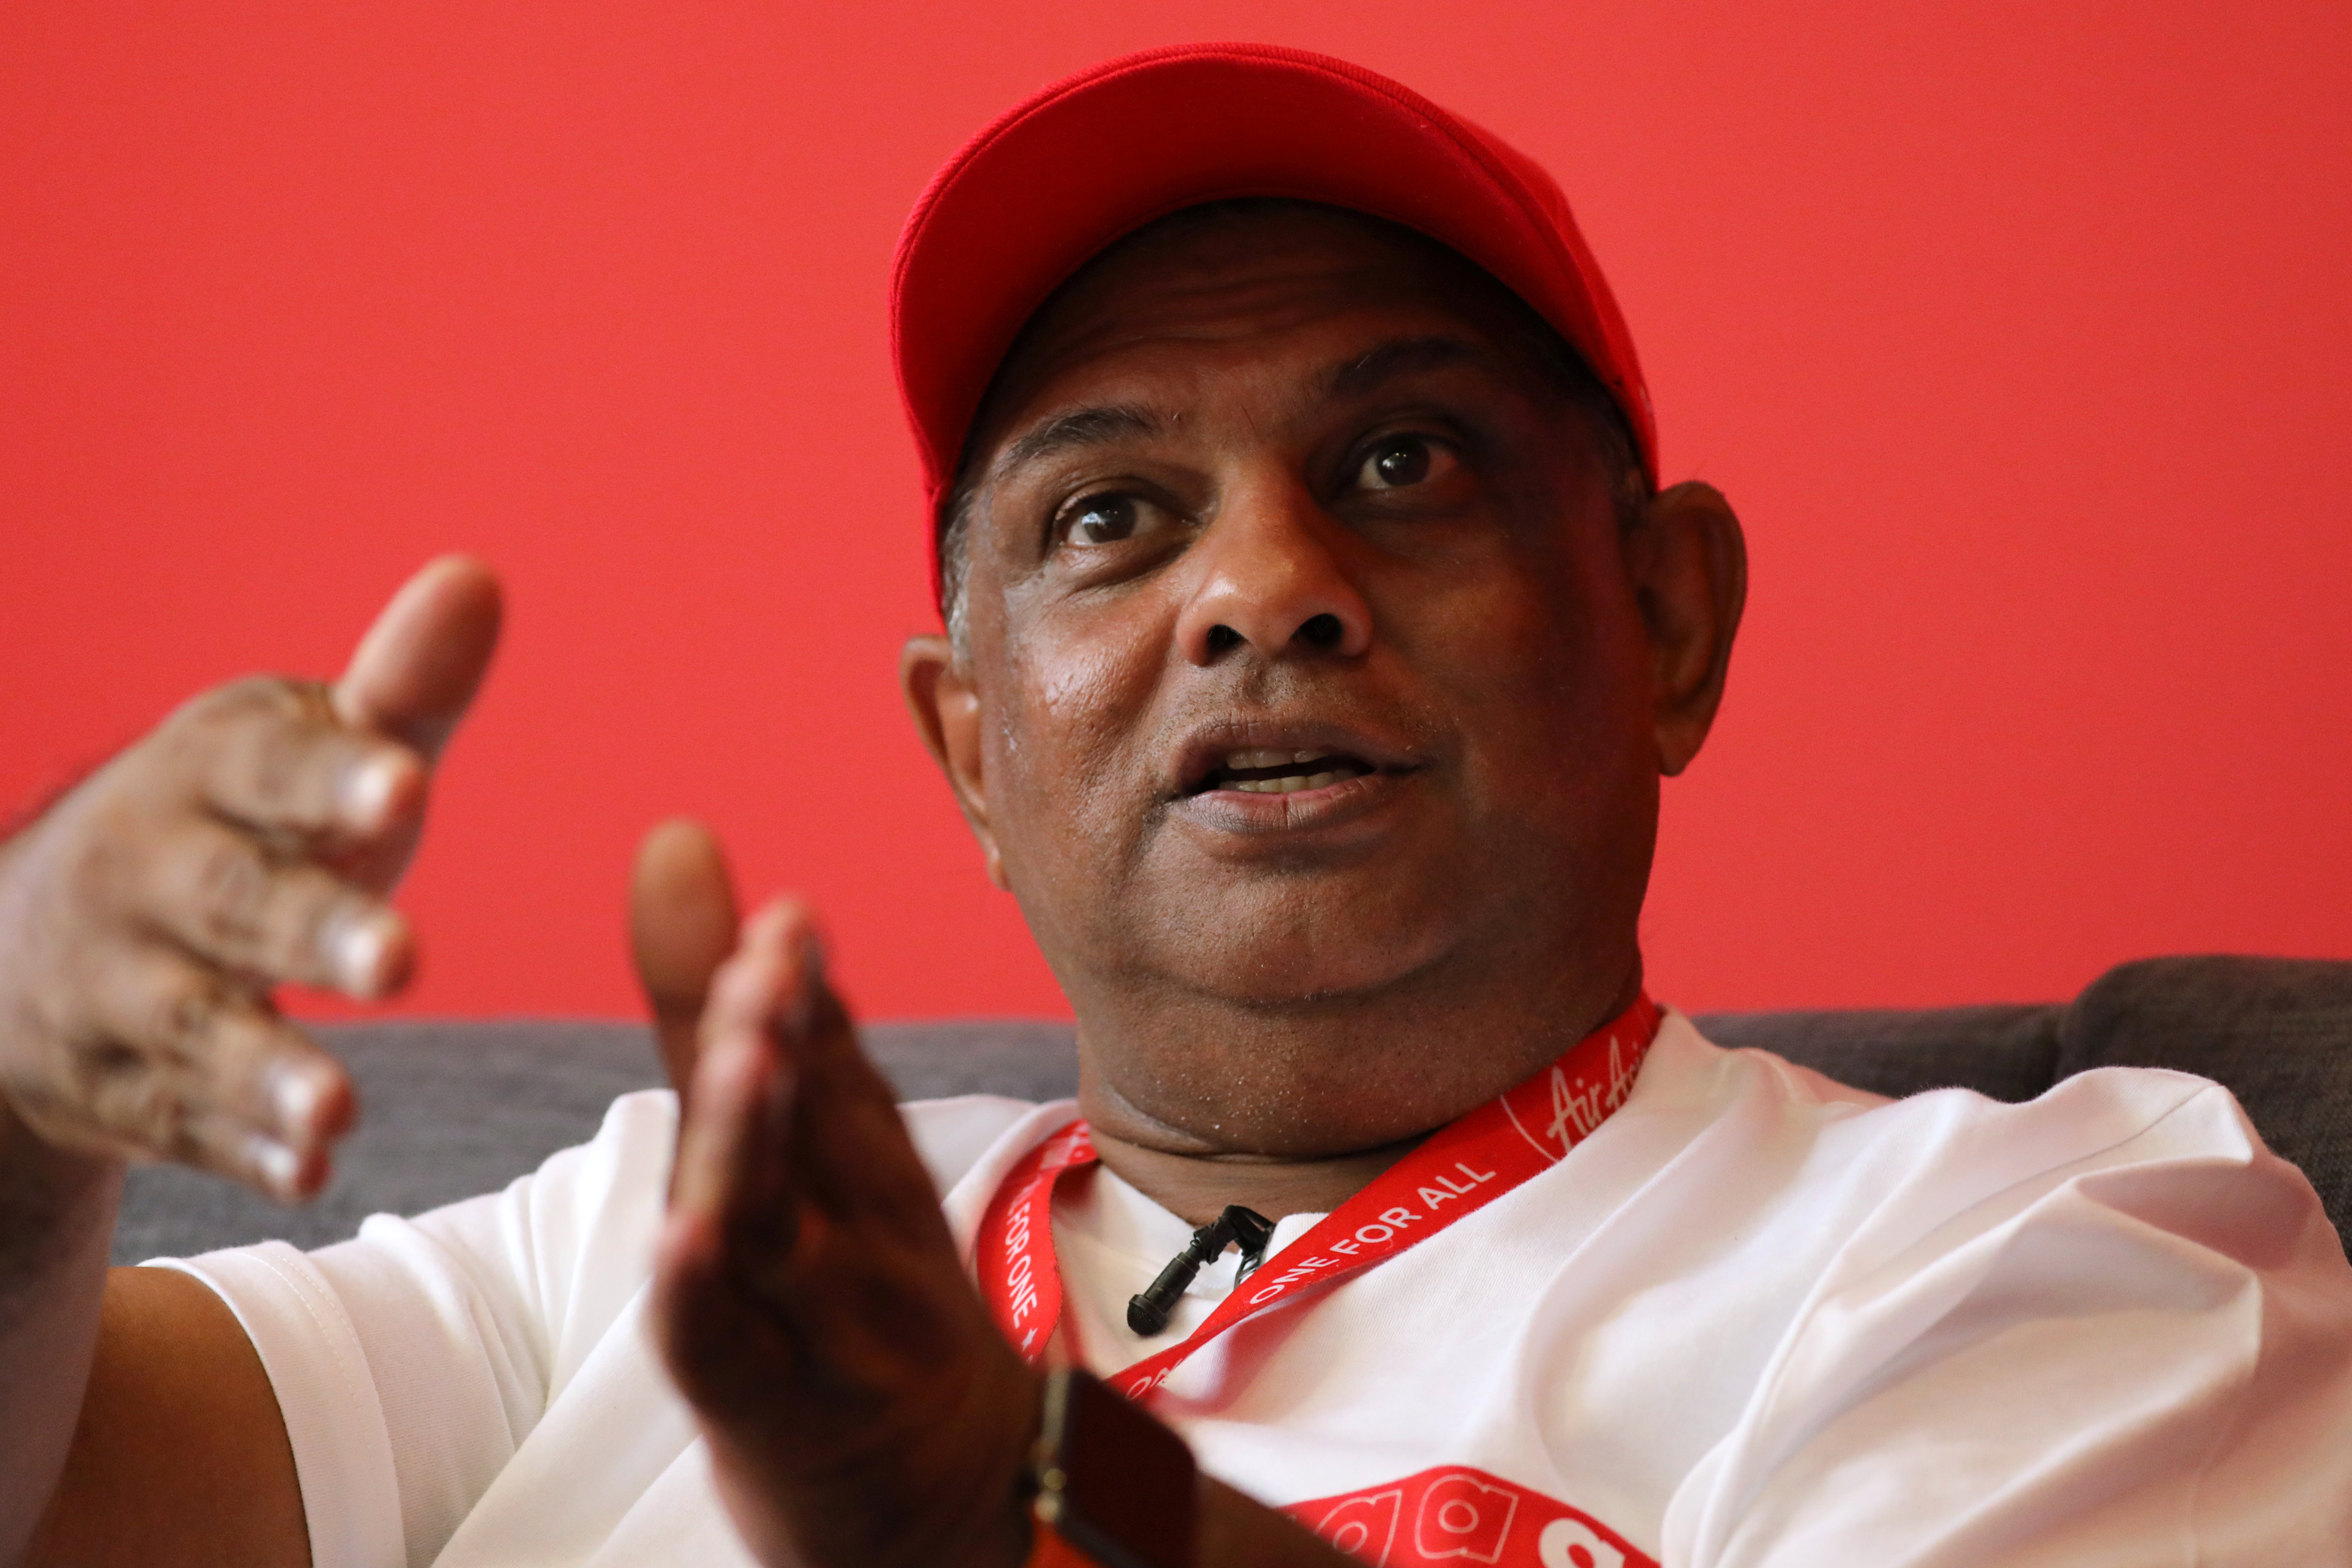 AirAsia Group CEO Tony Fernandes reacts during an interview in Kuala Lumpur, Malaysia October 8, 2020. REUTERS/Lim Huey Teng